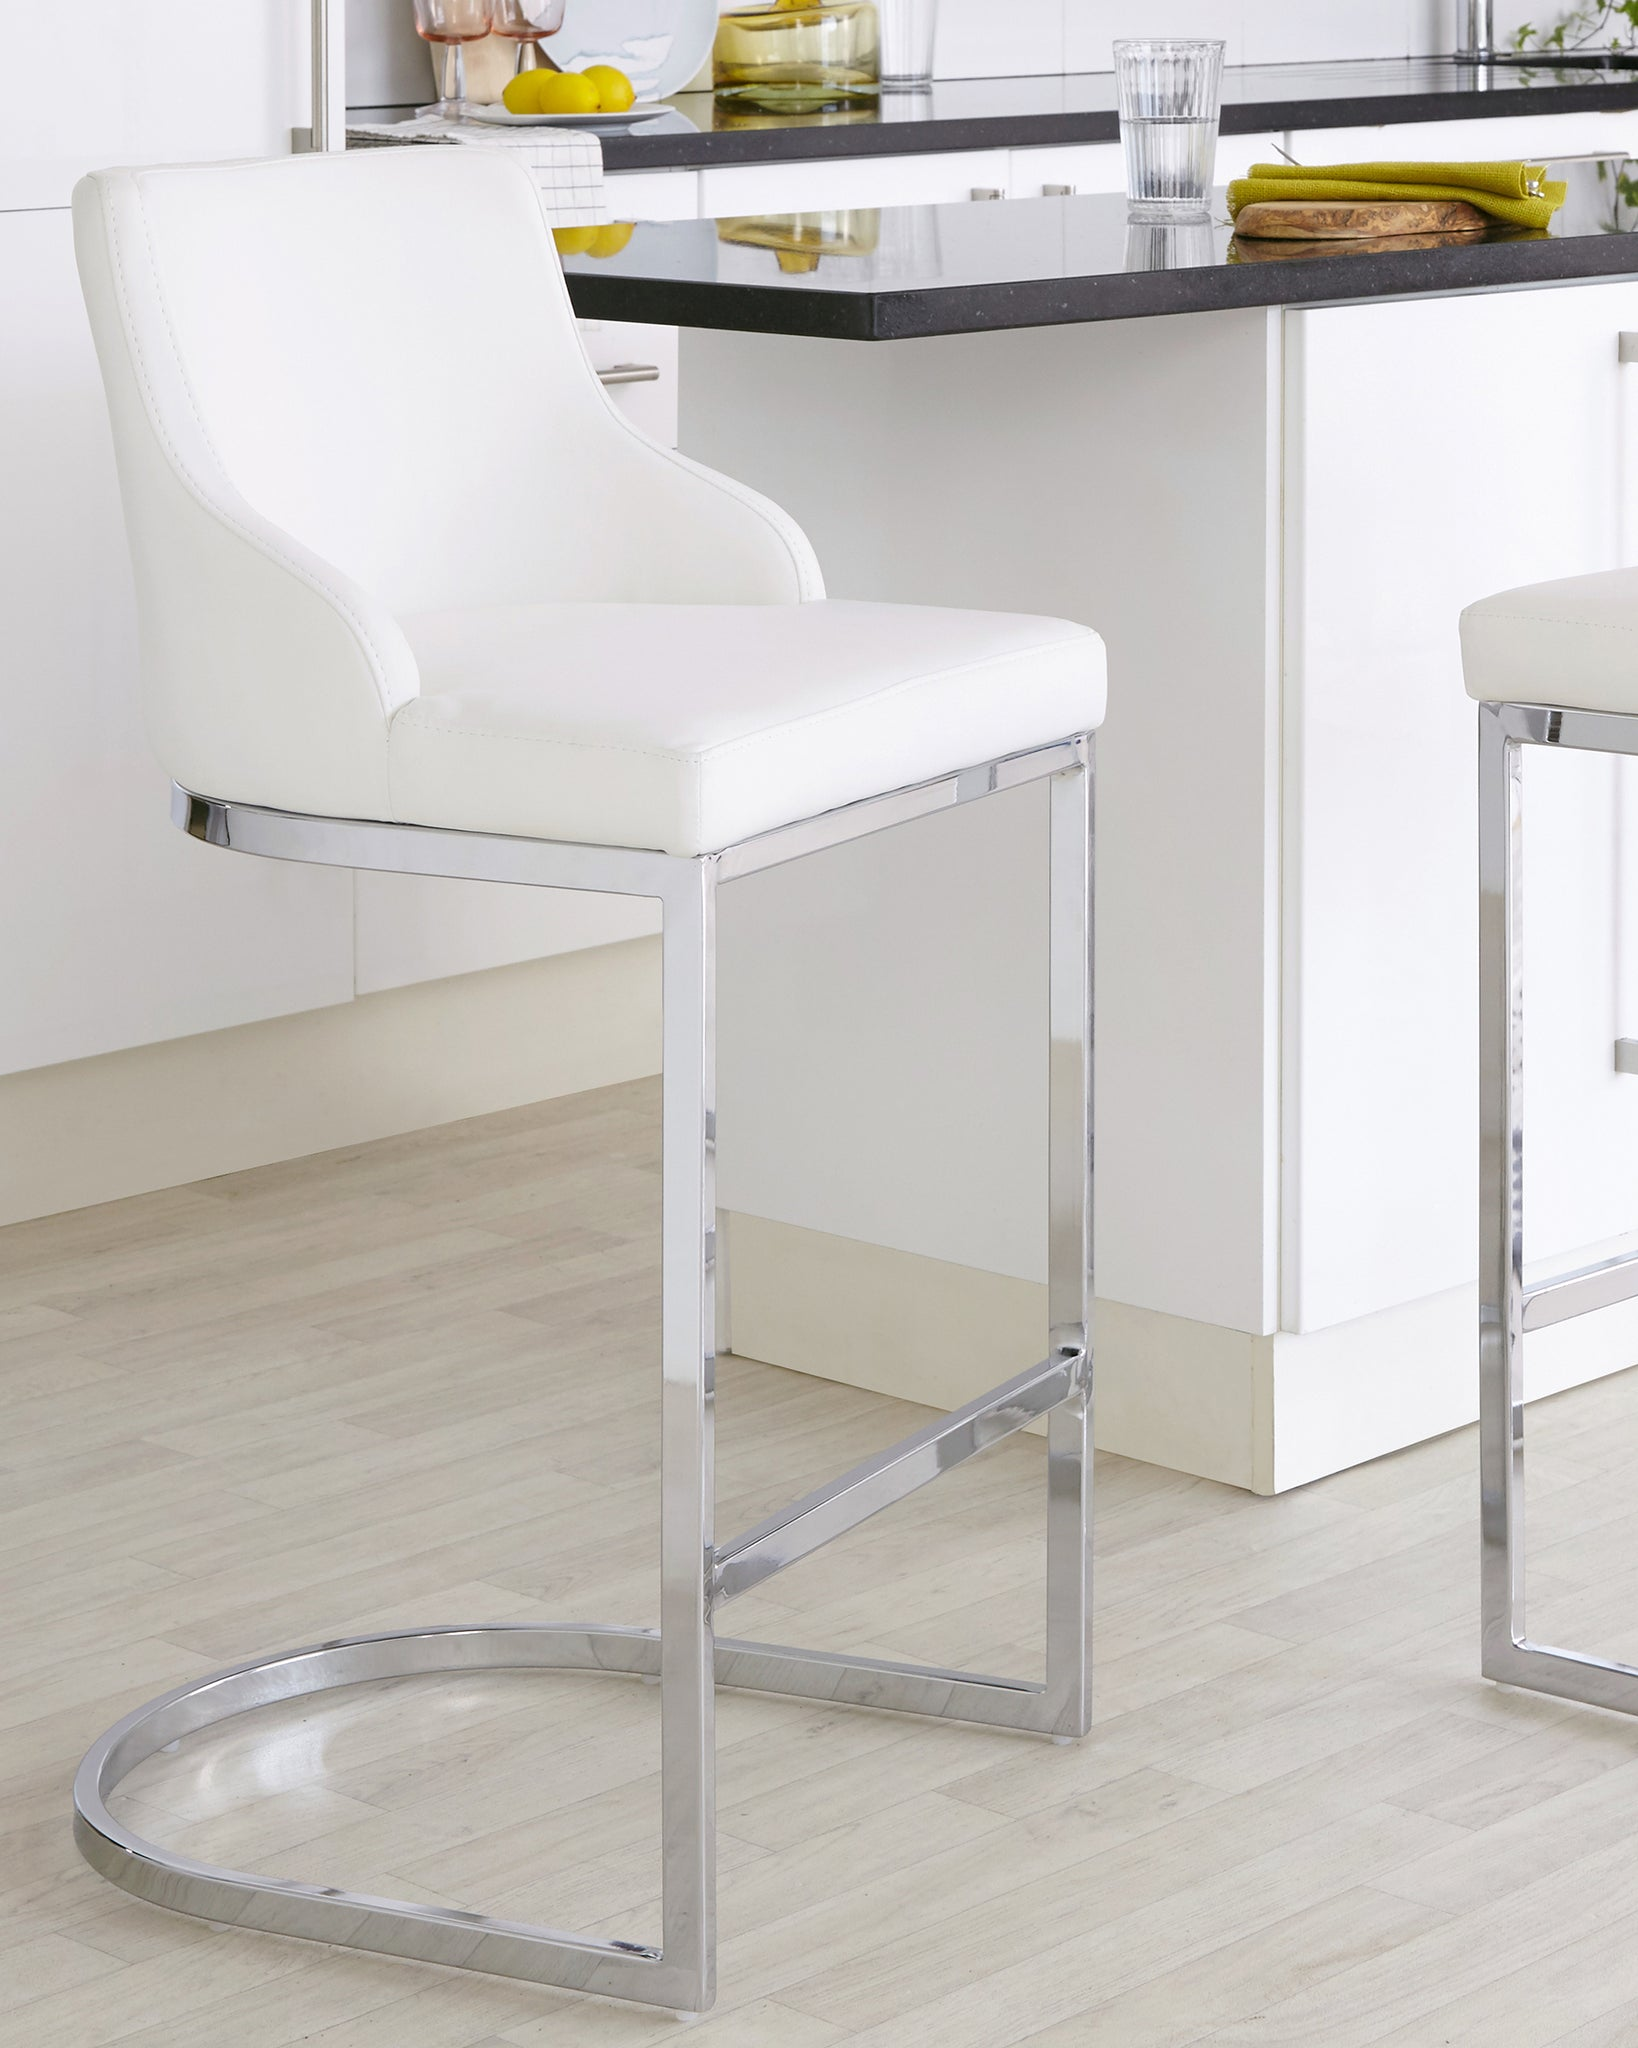 Form White & Chrome Bar Stool With Backrest - Set Of 2